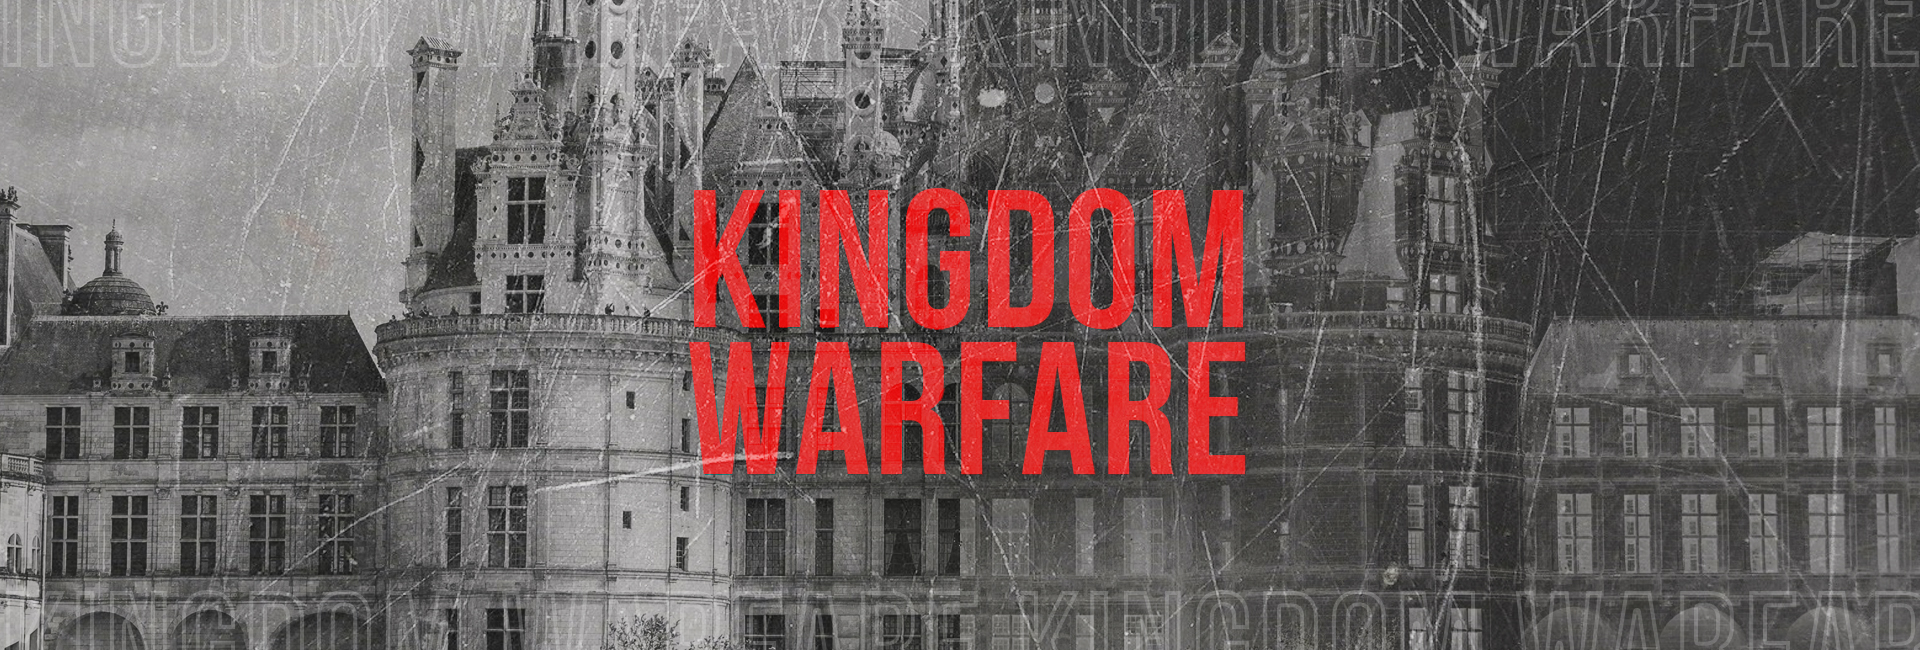 Kingdom Warfare